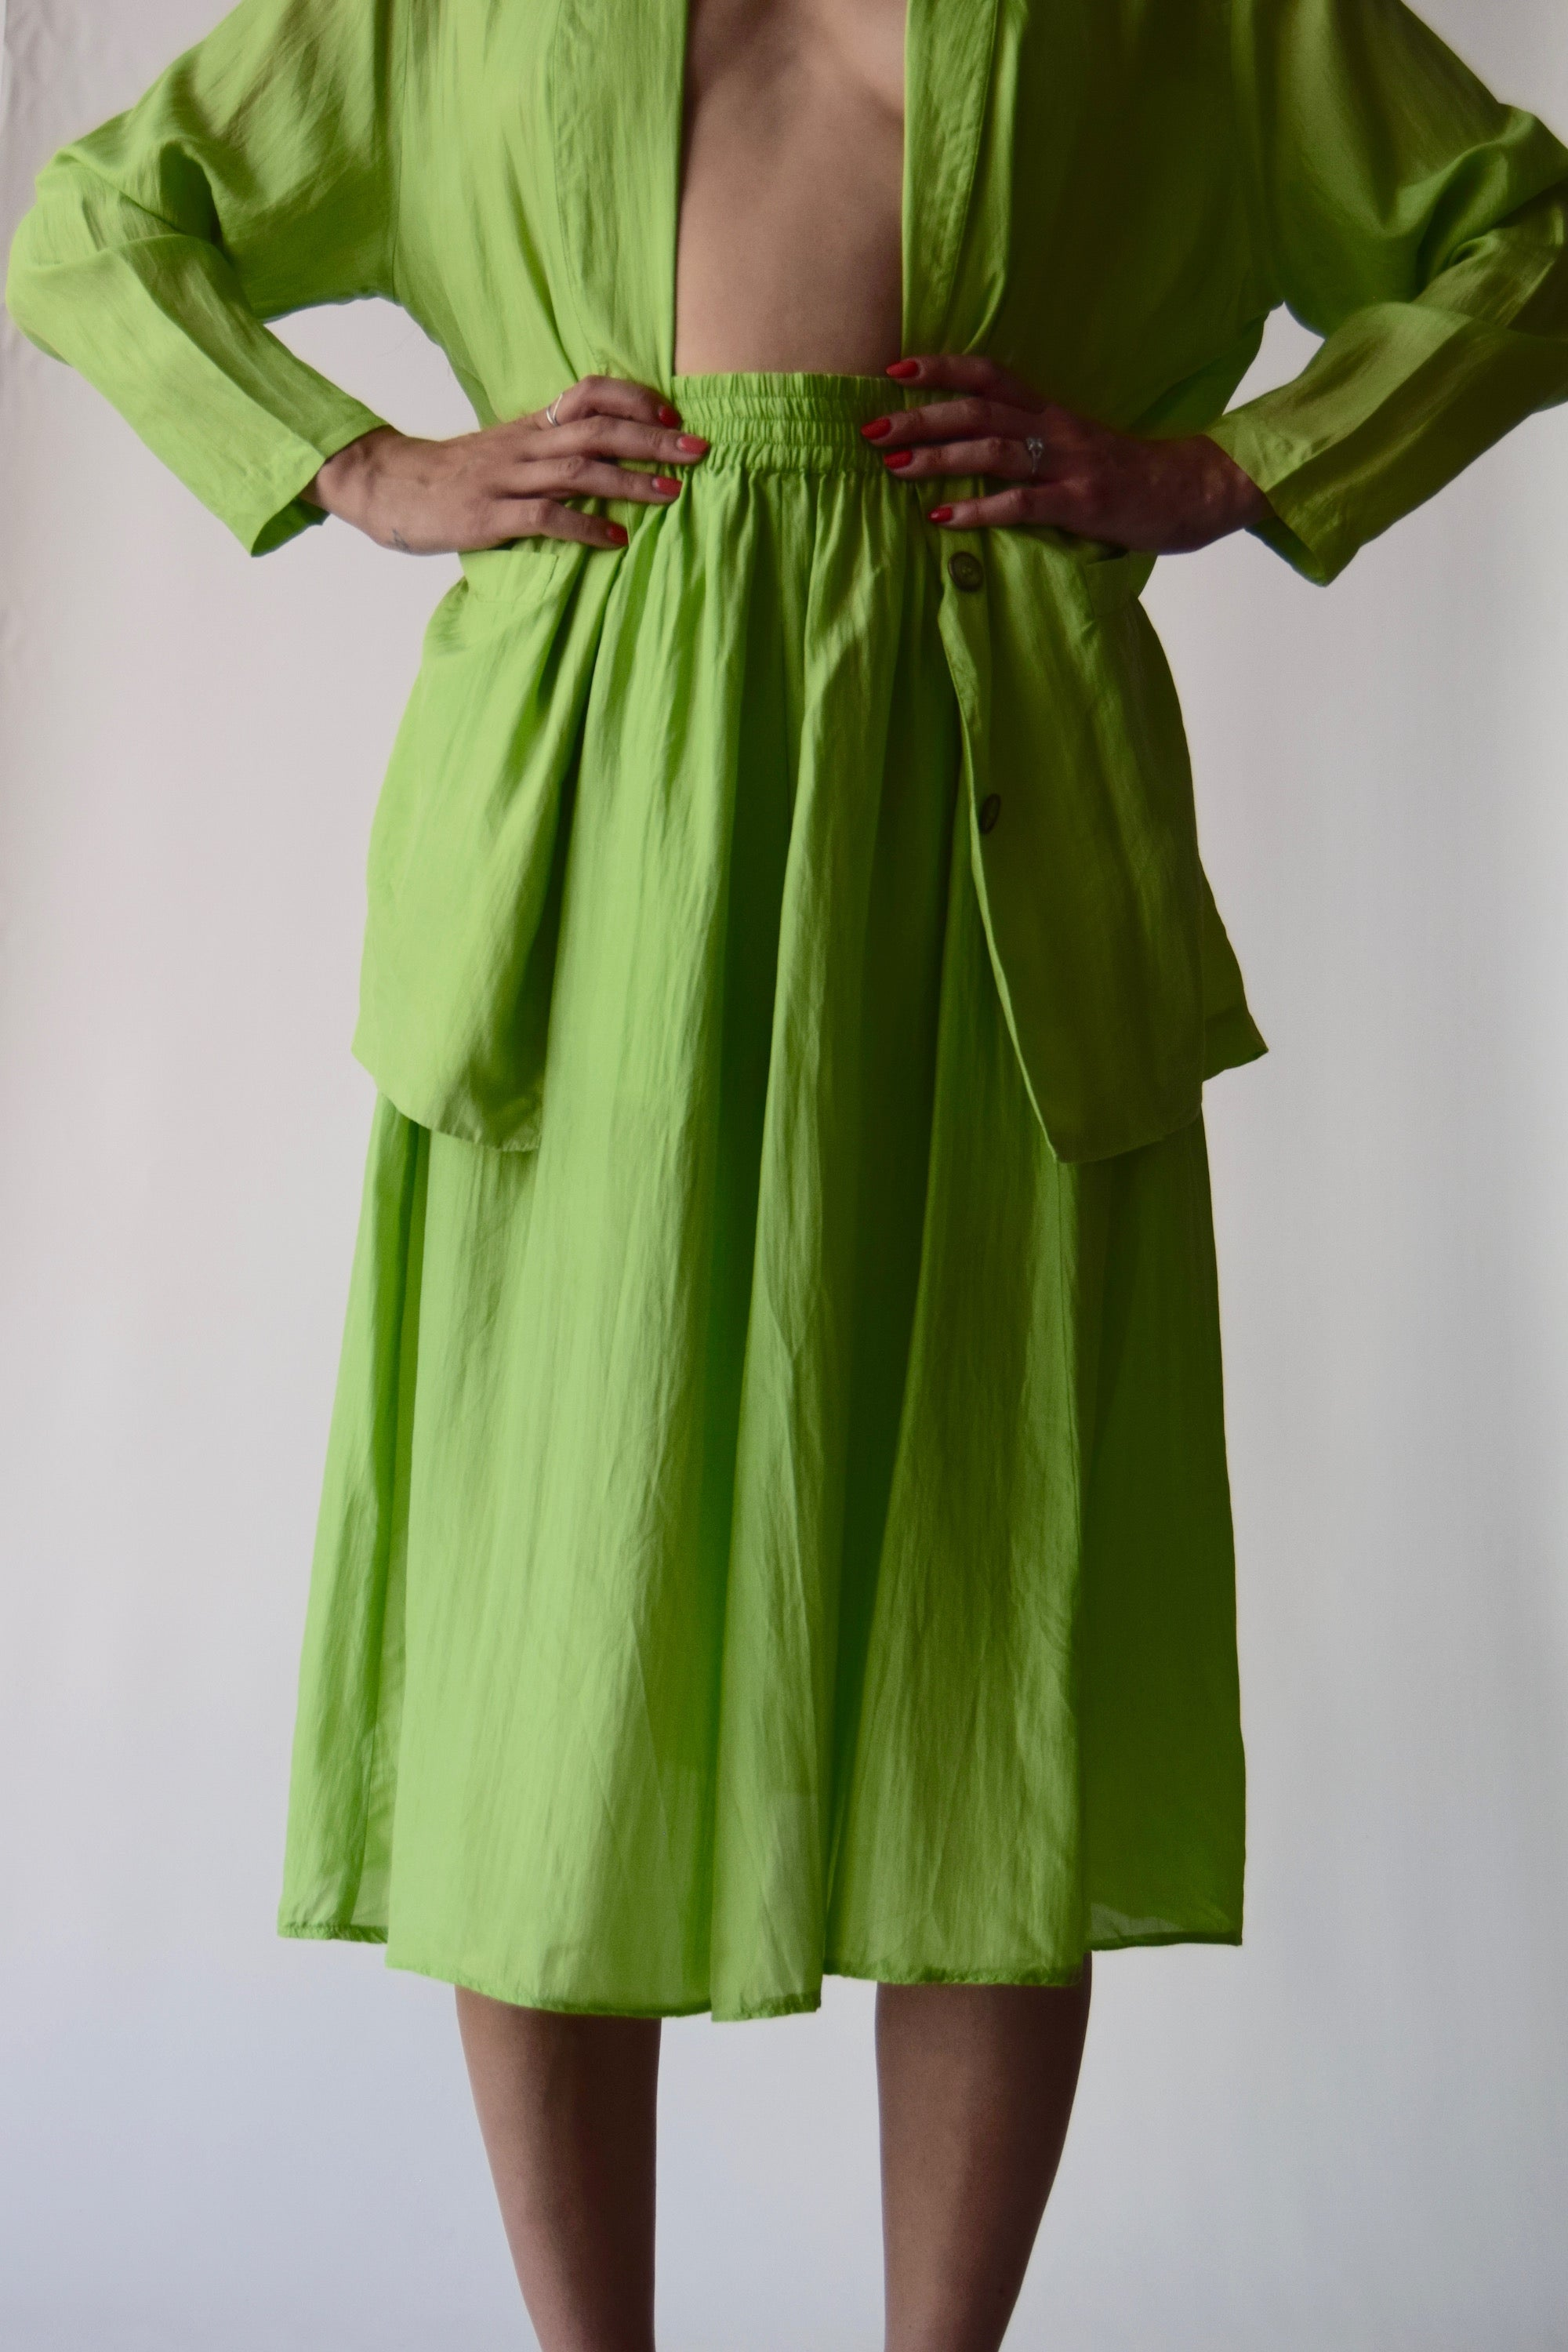 Vintage Silk Slime Green 2 Piece Skirt Suit FREE SHIPPING TO THE U.S.